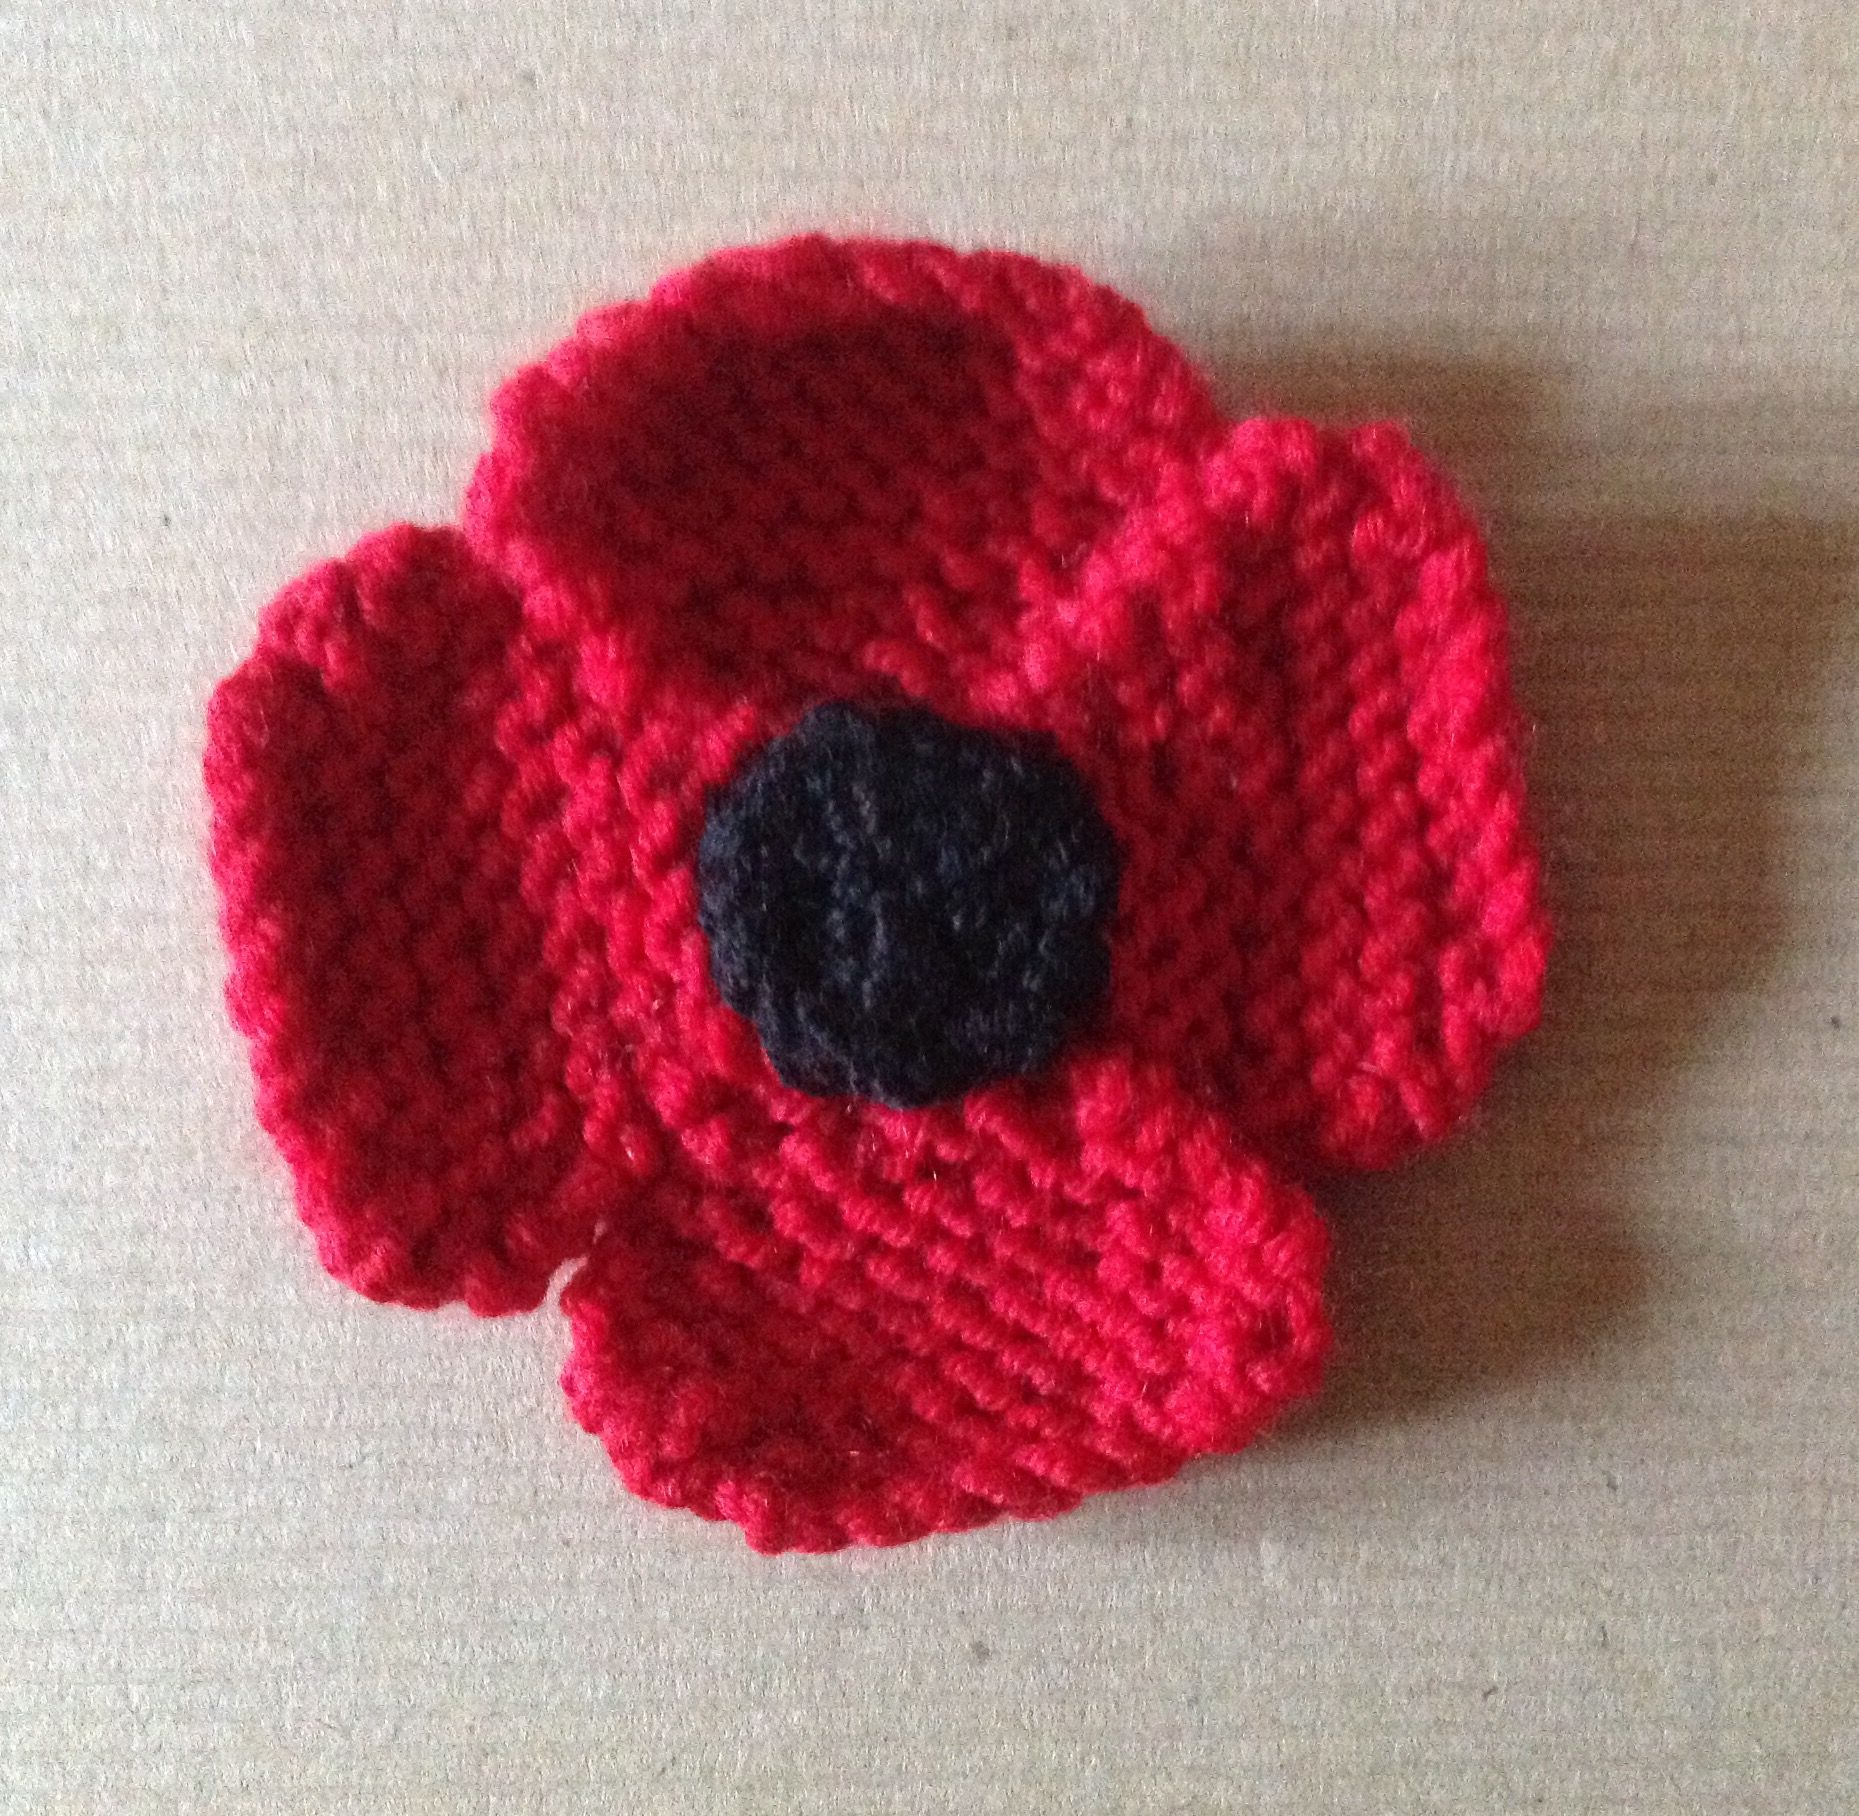 OCTOBER MONTHLY PROJECT - Knitted Remembrance Poppy ...